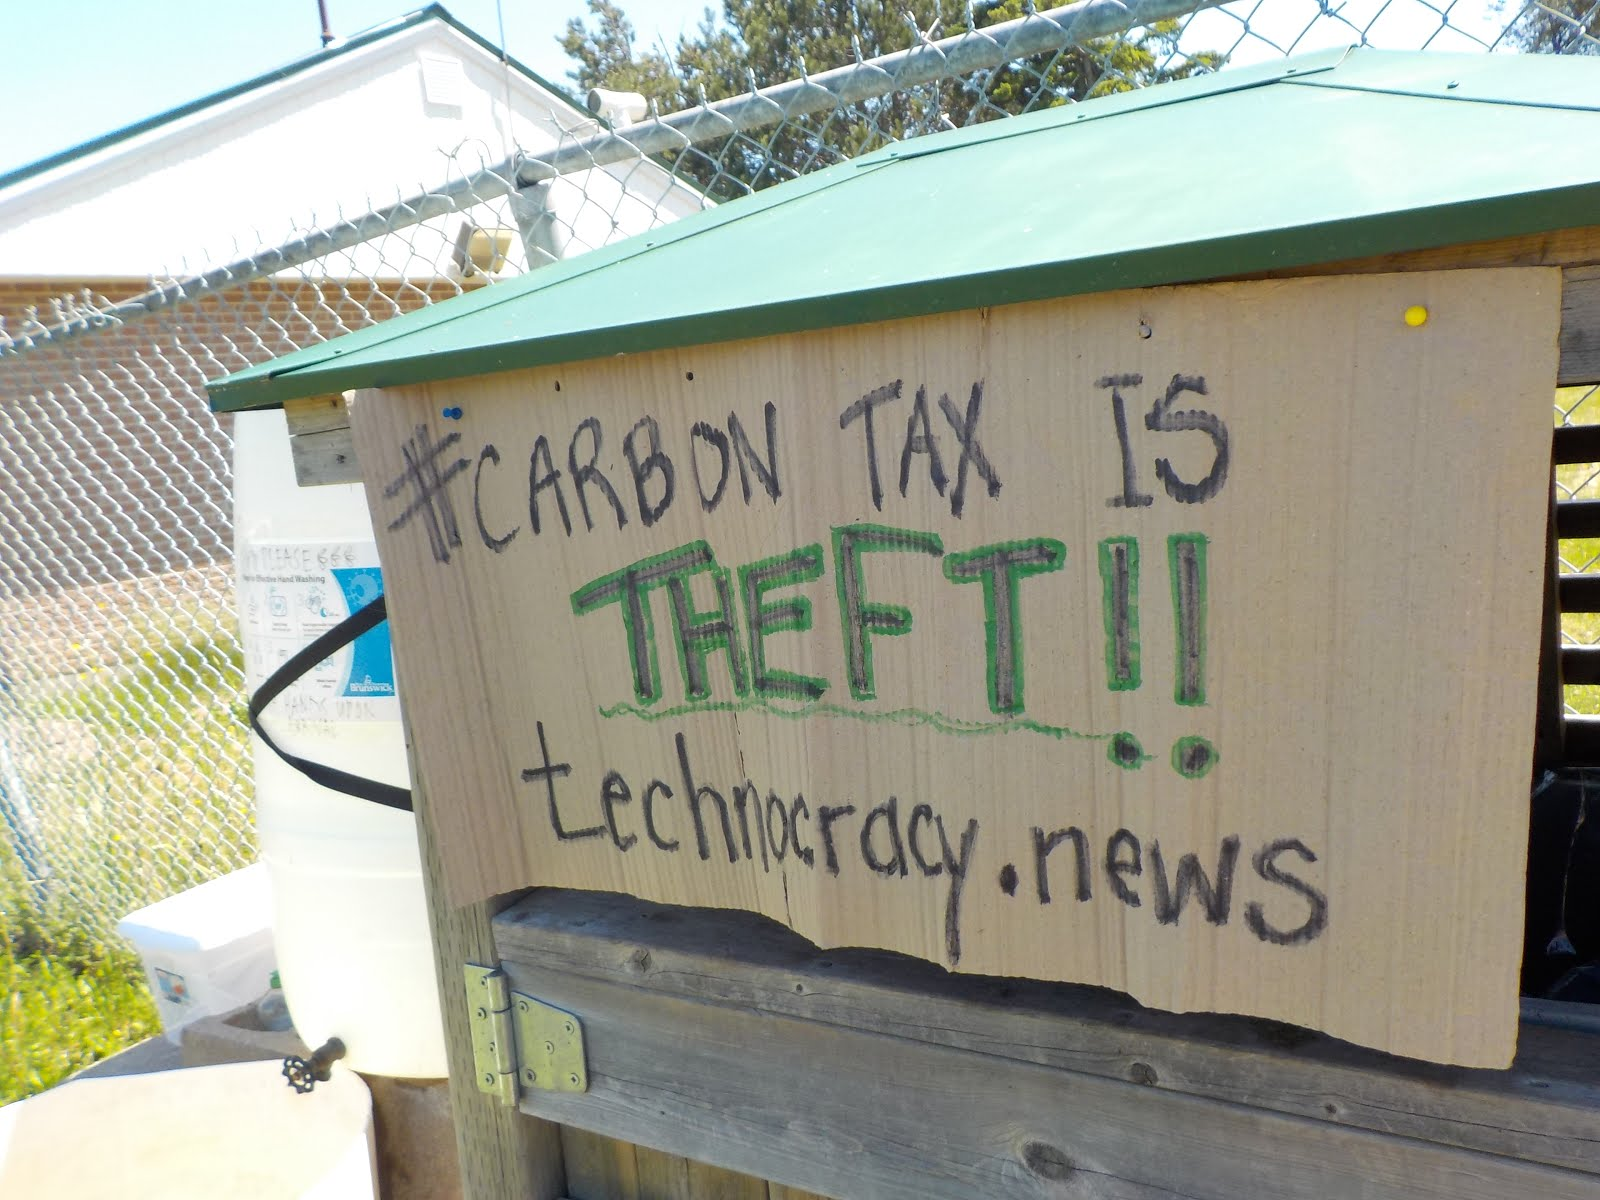 #Carbon Tax is Theft @Technocracy.news